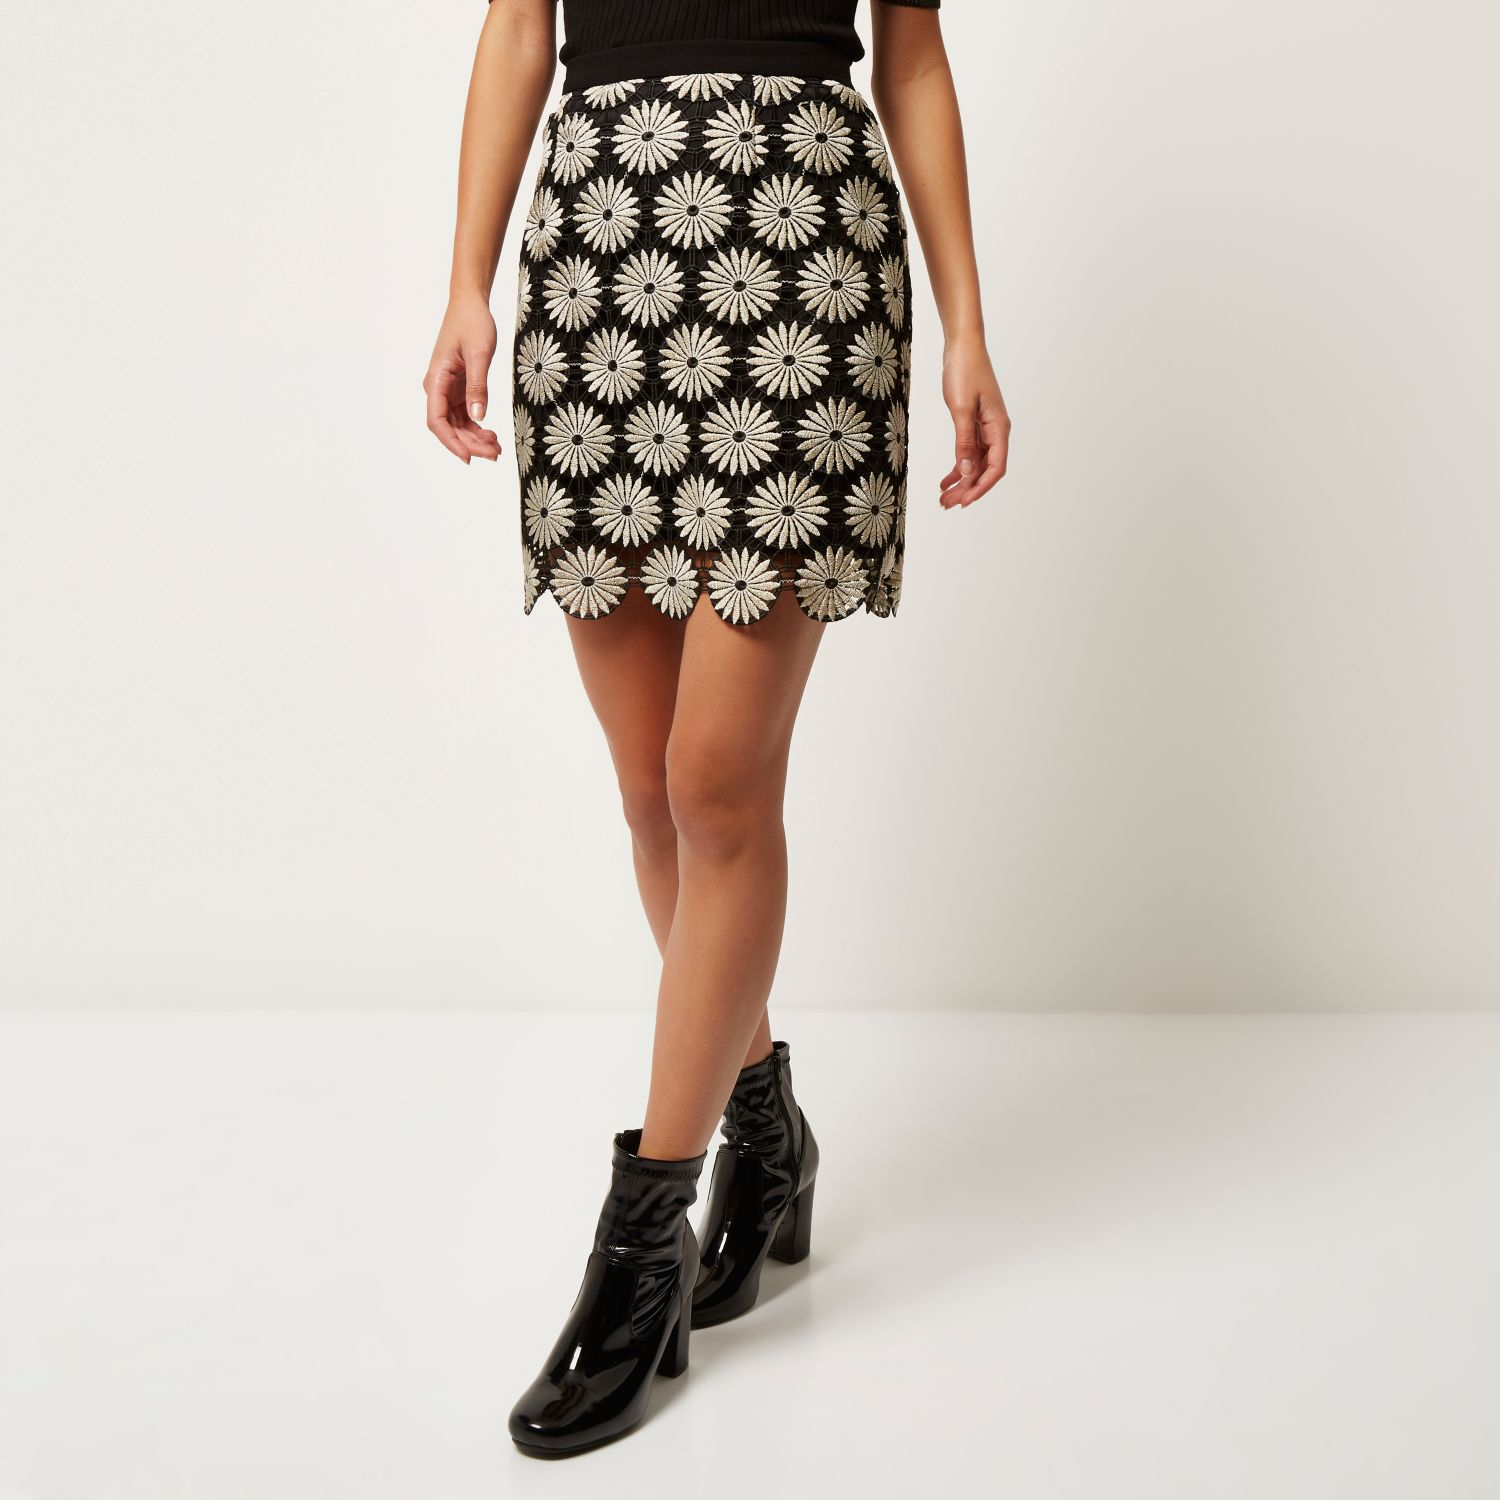 River island Black Lace Flower Mini Skirt in Black | Lyst